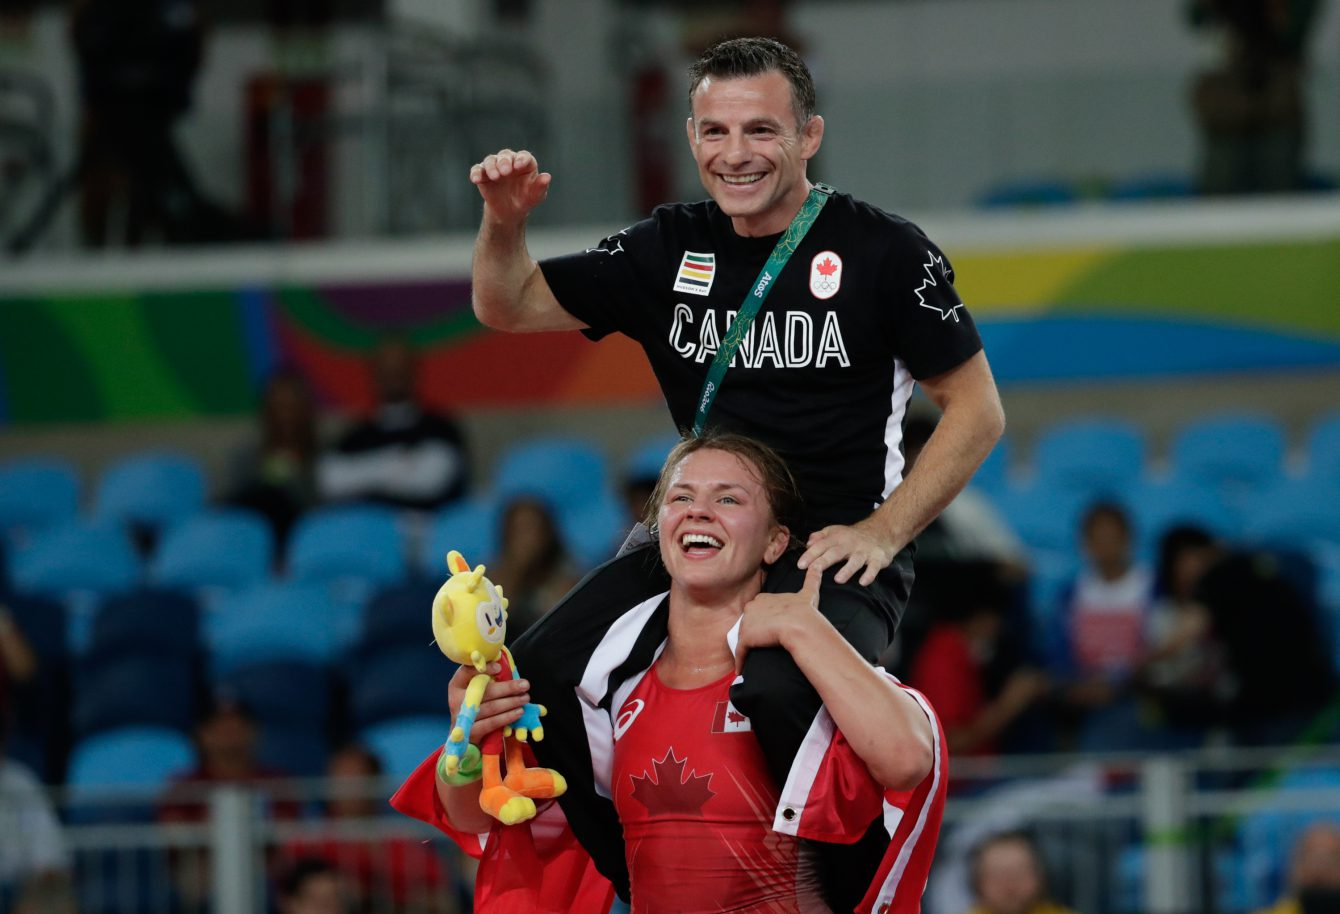 Erica Wiebe carries coach Paul Ragusa after after winning the gold medal during the women's 75kg freestyle wrestling competition at the 2016 Summer Olympics in Rio de Janeiro, Brazil, Thursday, Aug. 18, 2016. photo/ David Jackson